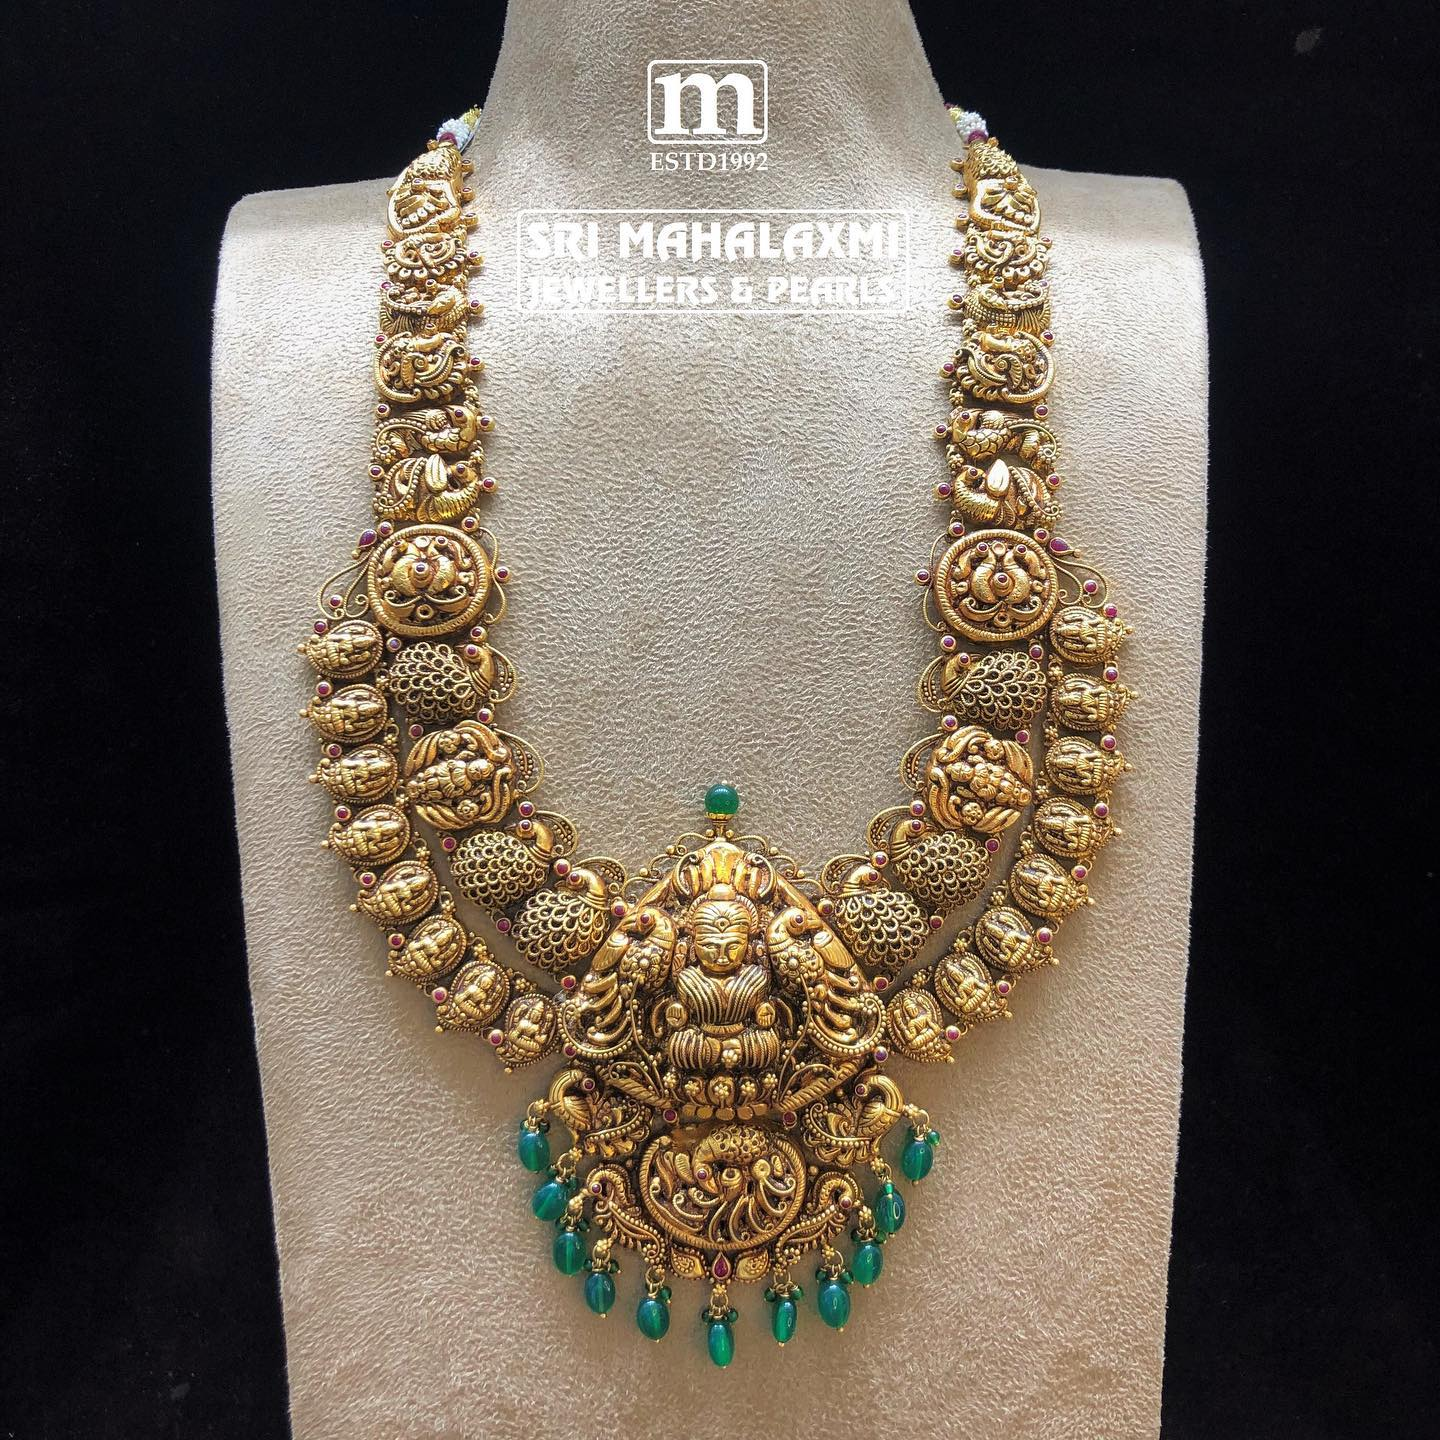 Gorgeous deep nakash work haram! Exquisite temple jewellery collection made in light weight using fine gems. 2021-05-24